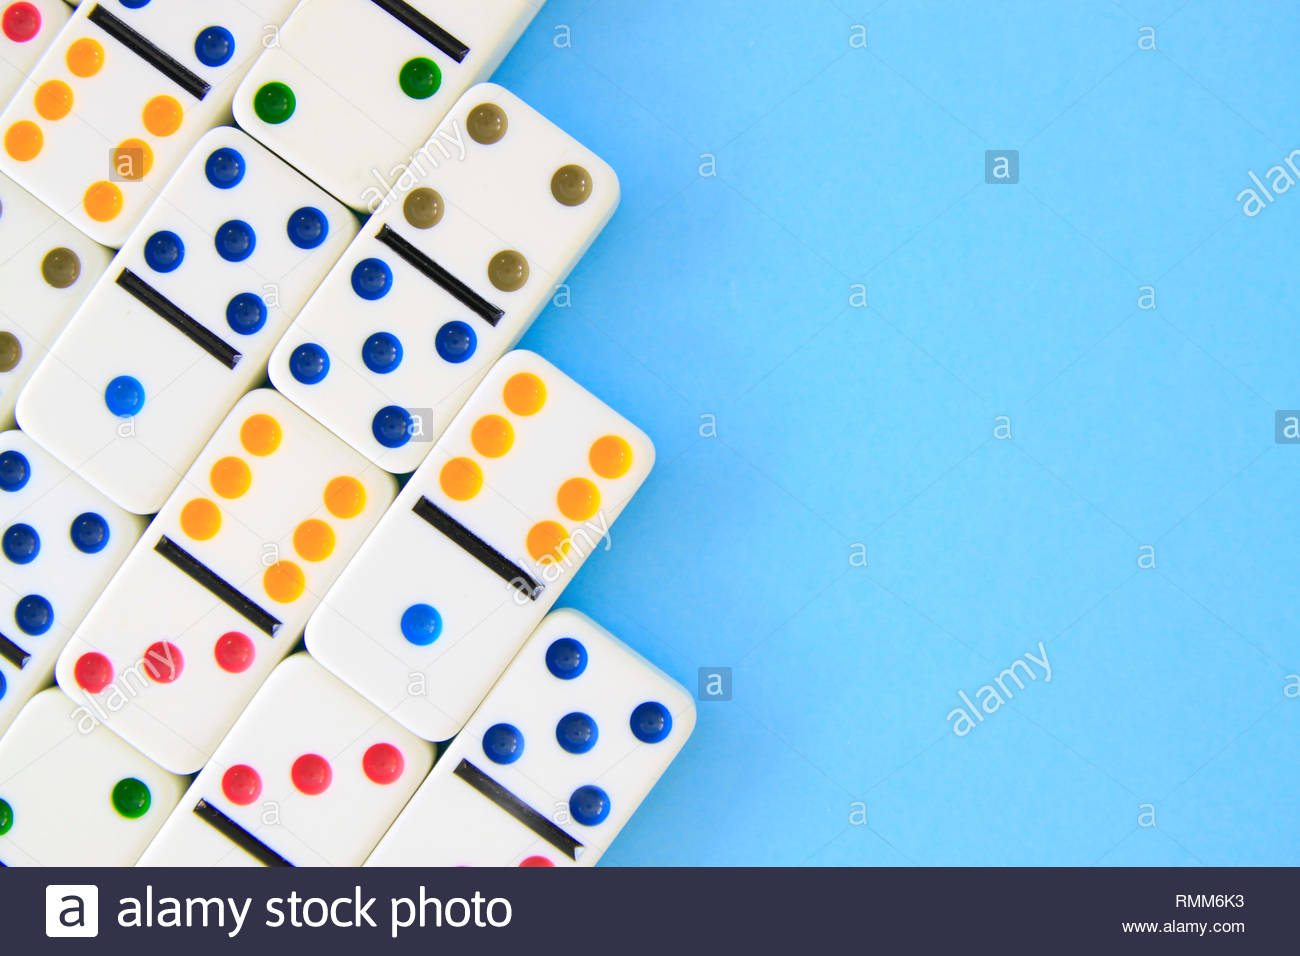 White dominos with brightly colored dots on blue background shot 1300x956